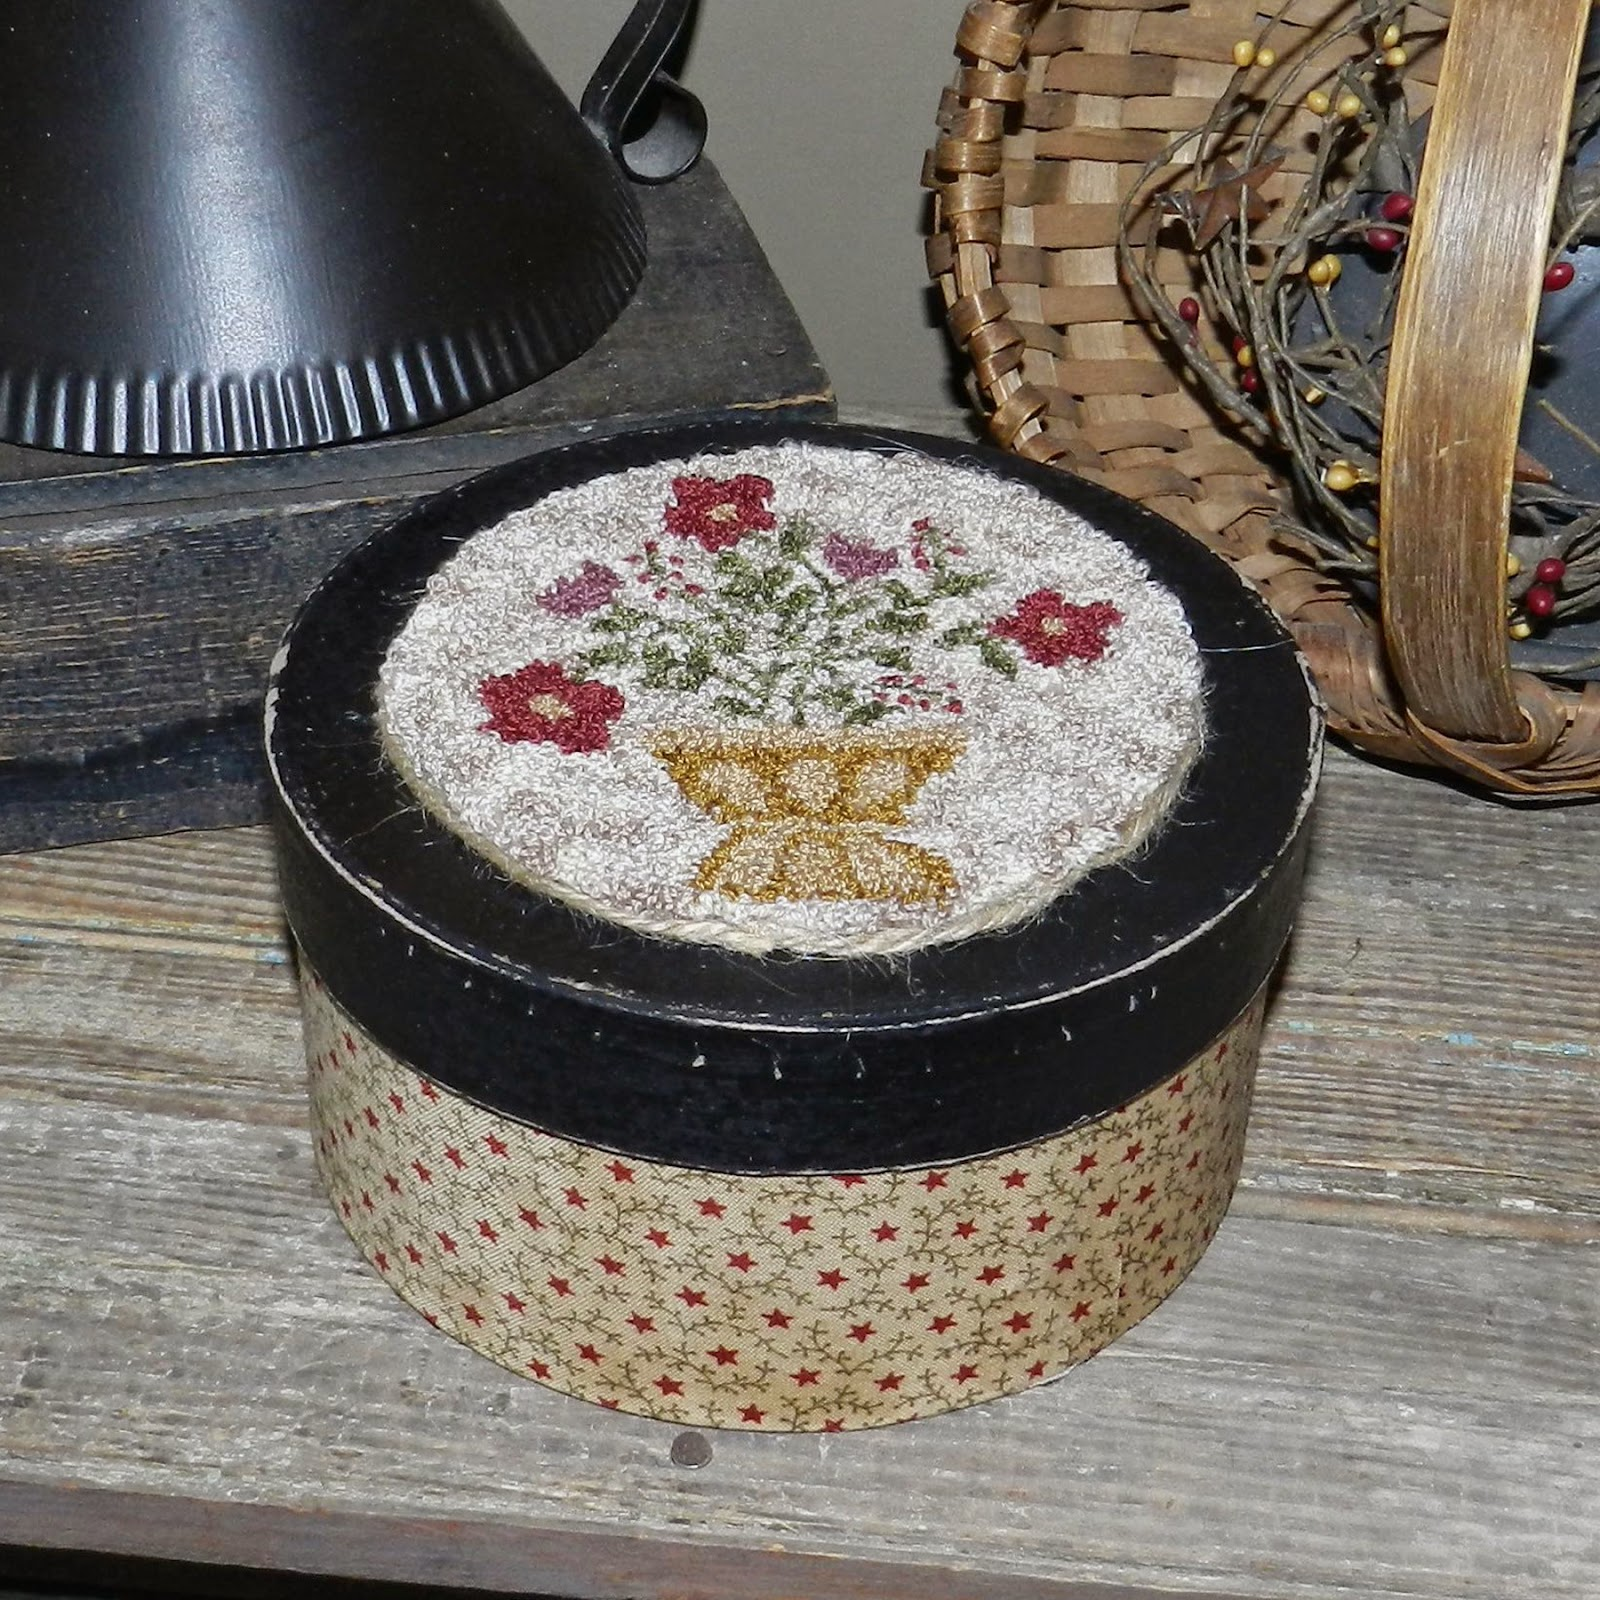 http://www.ebay.com/itm/Primitive-OOAK-Punch-Needle-Mounted-on-Fabric-Box-Flower-Basket-The-Olde-Saltbox-/261848938372?ssPageName=STRK:MESE:IT